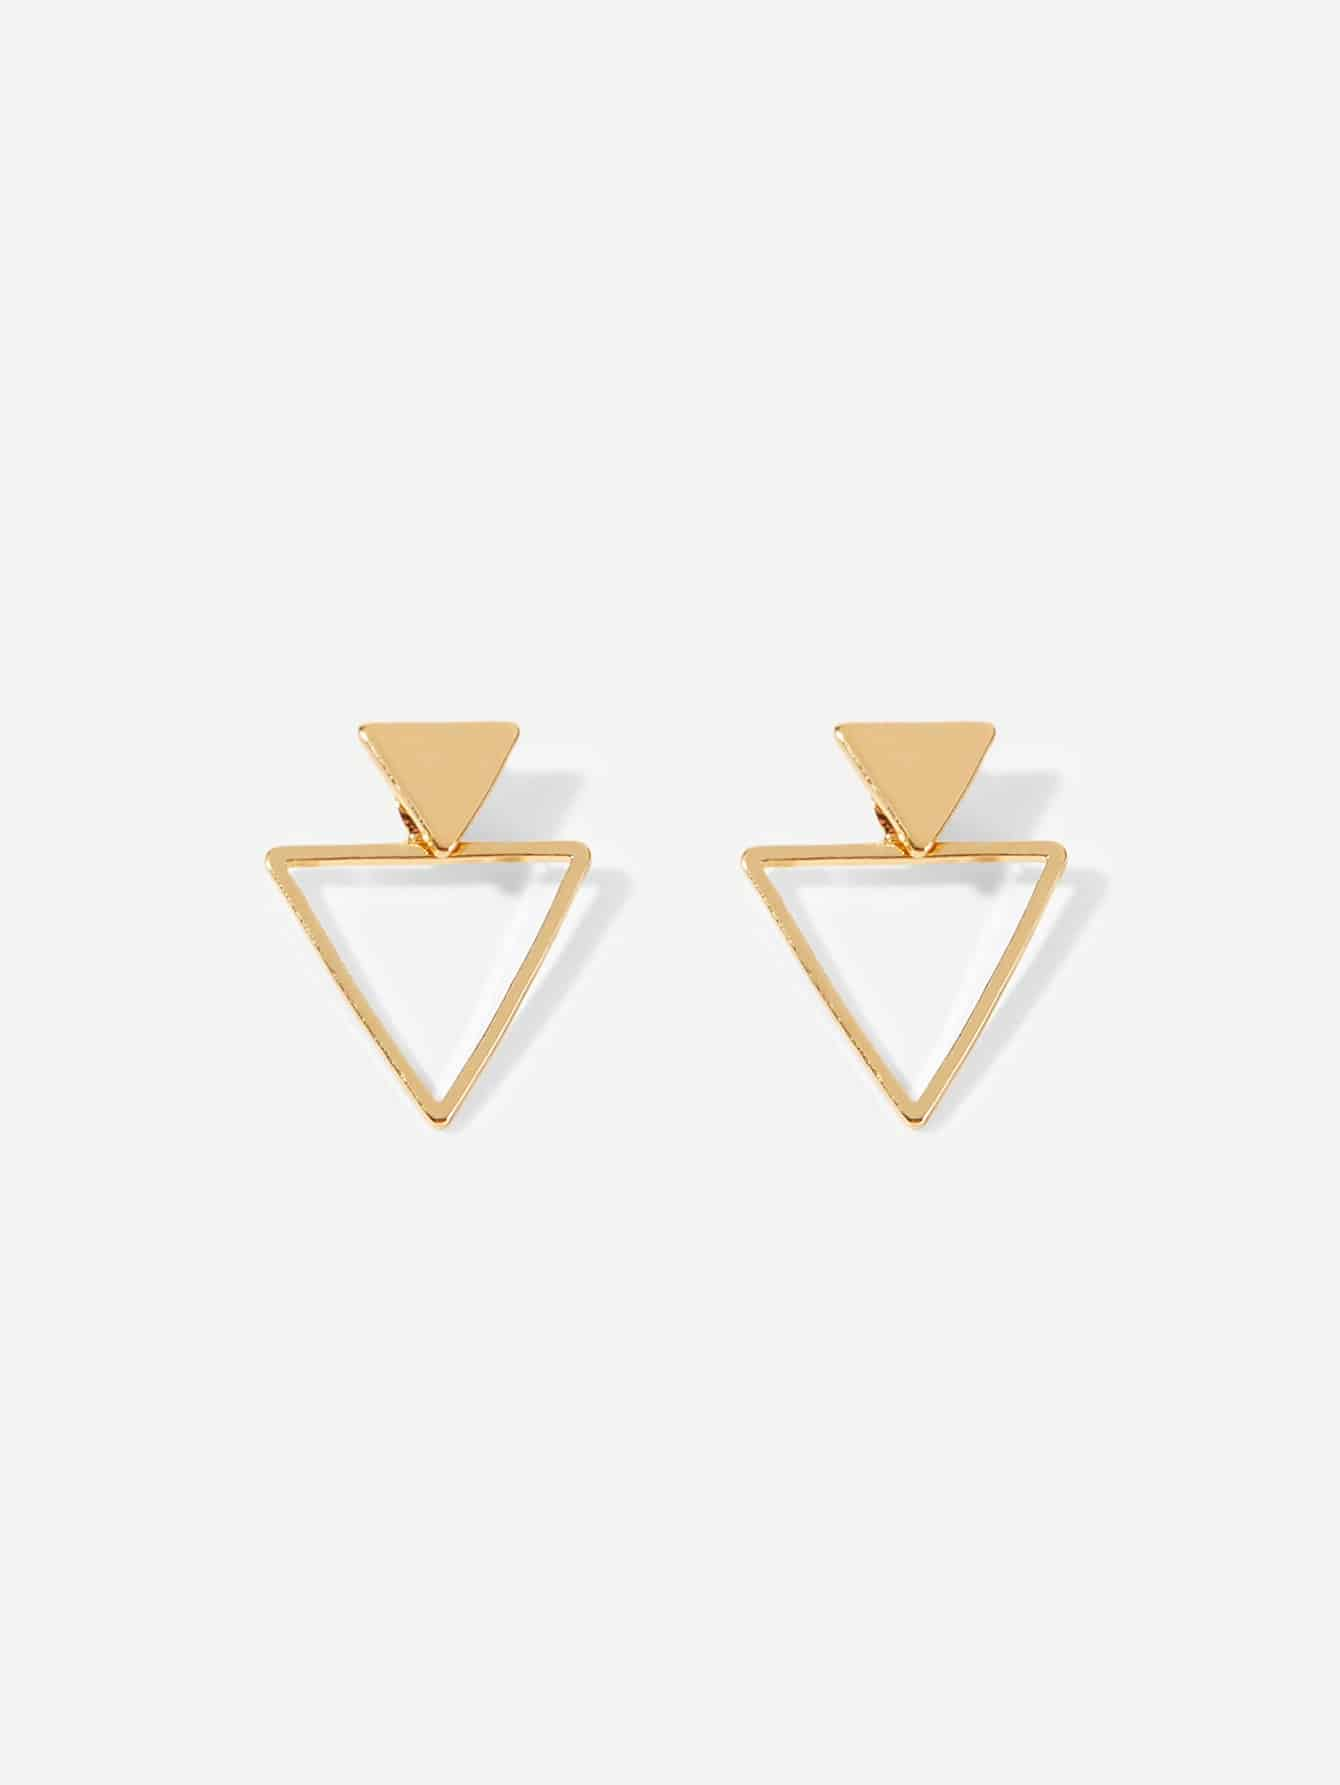 Multicolored Triangle Shaped Open 1 Pair Stud Earrings